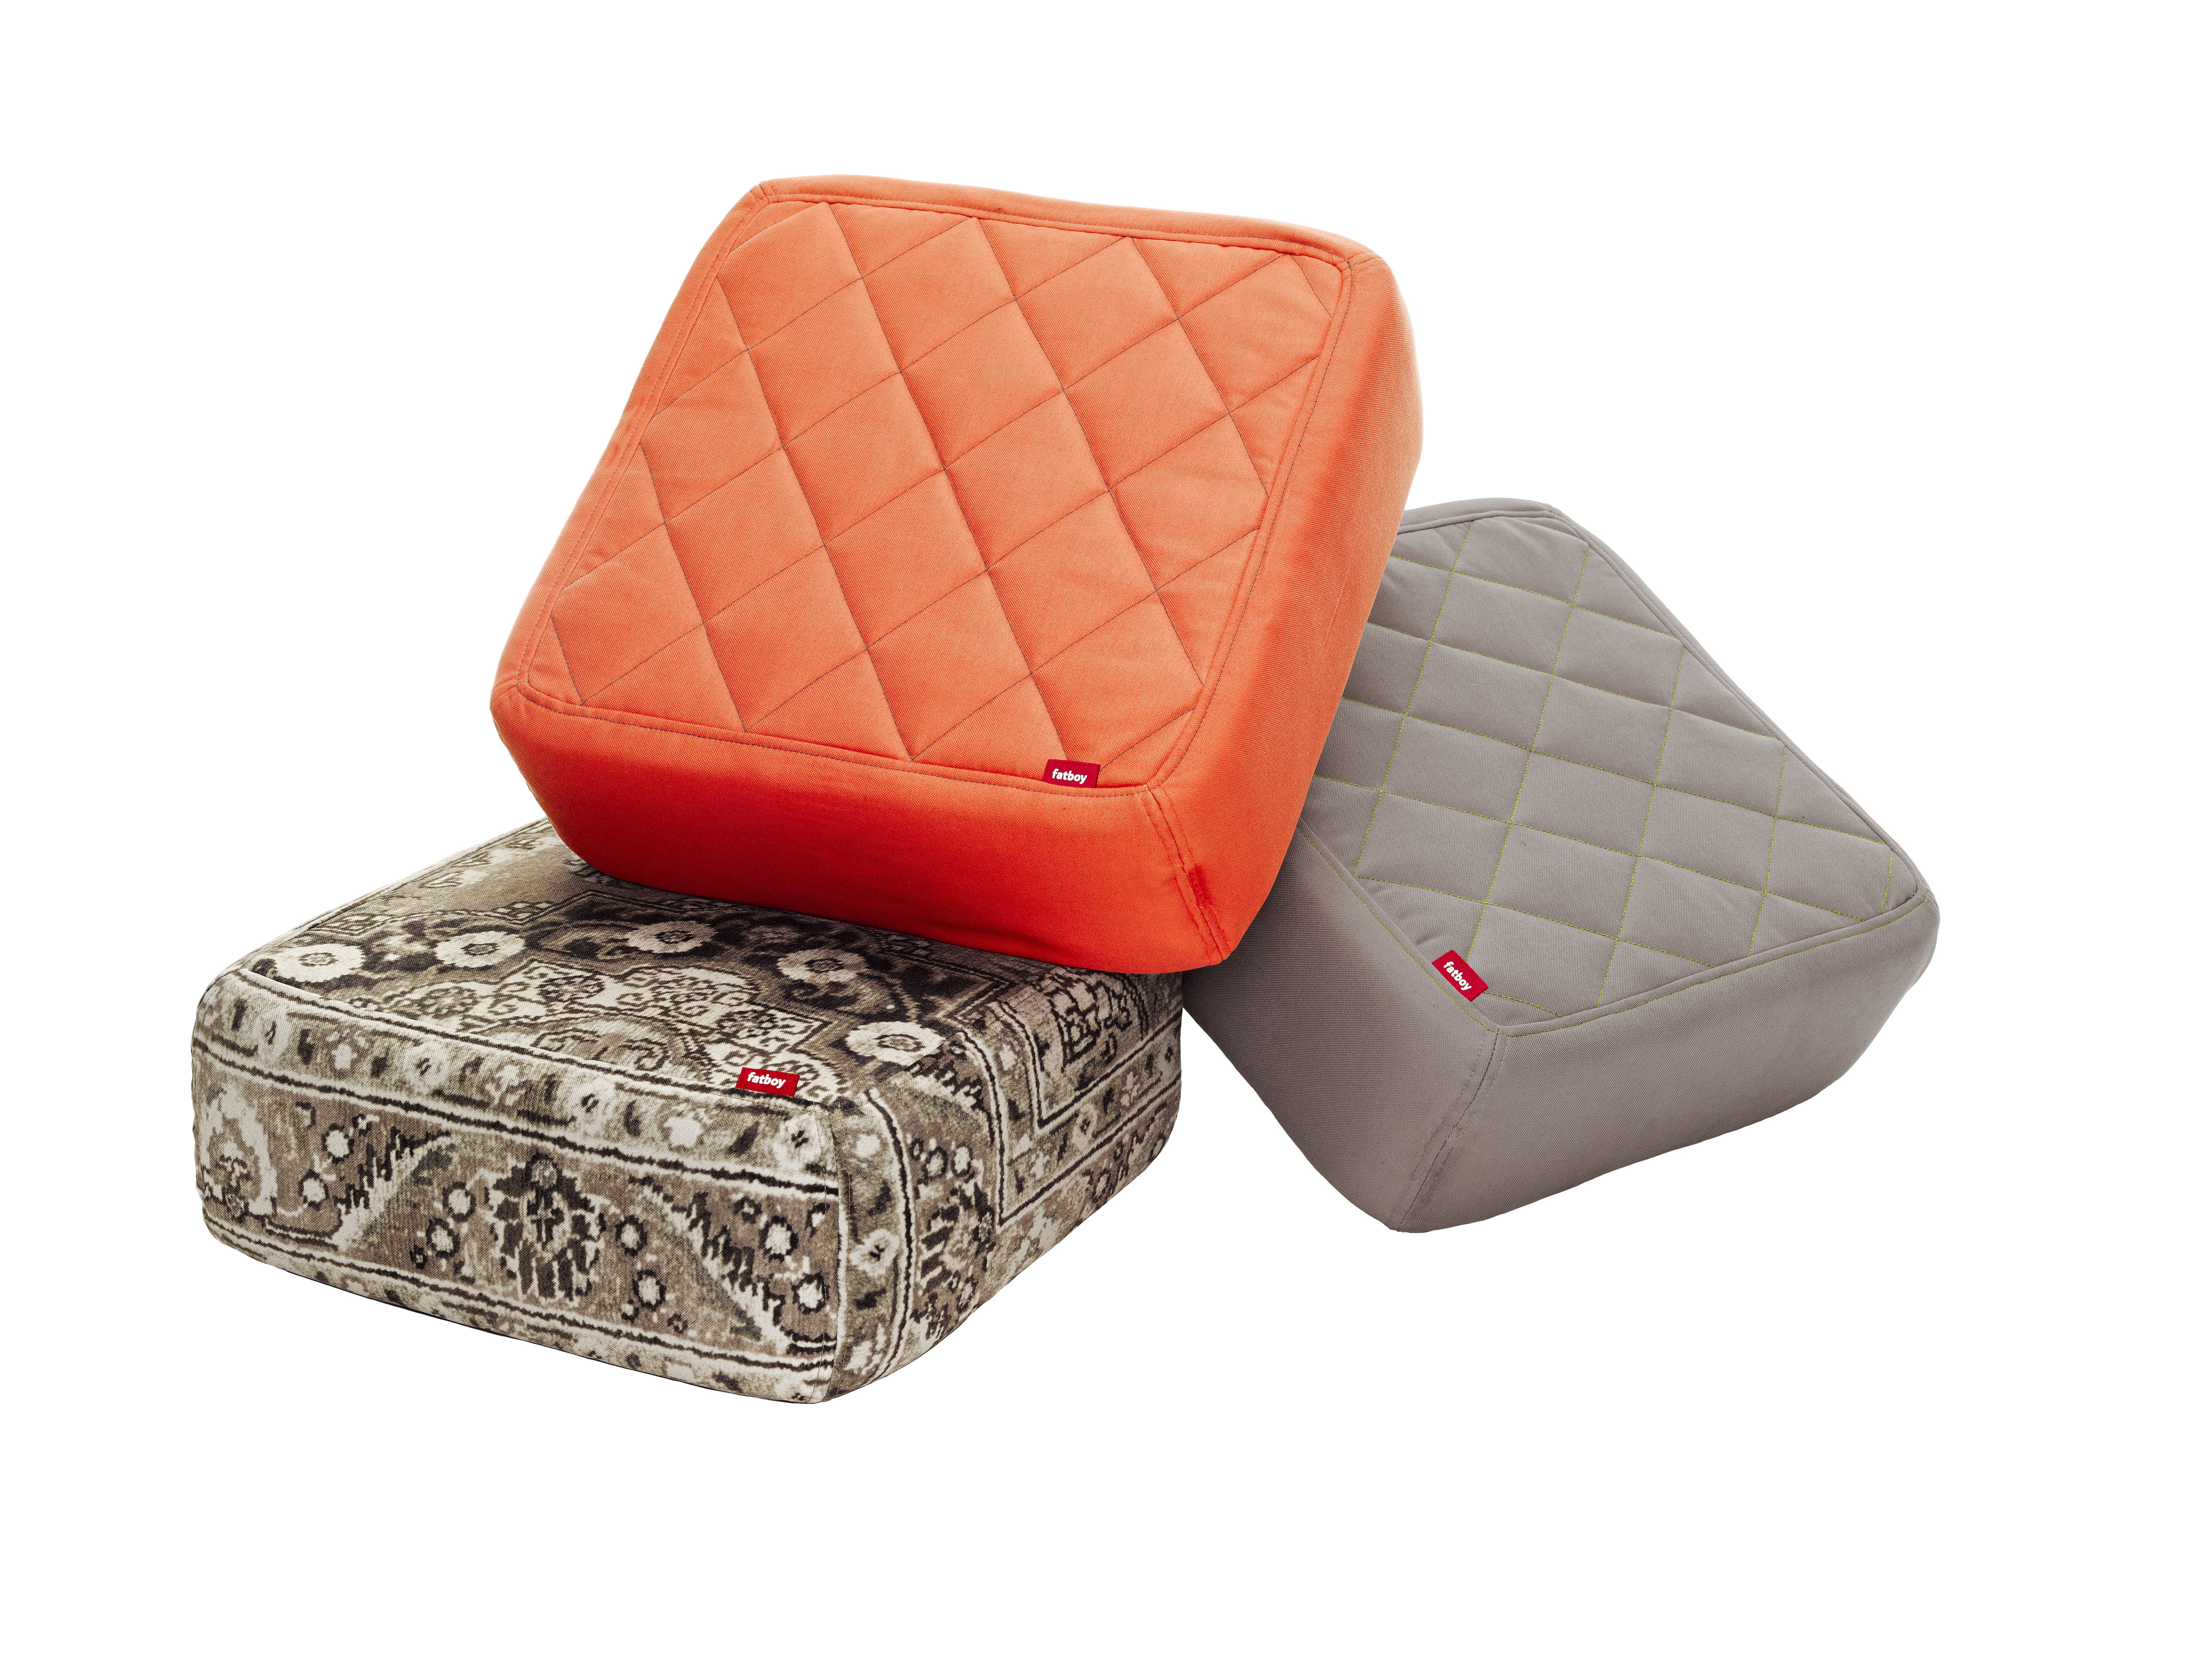 baboesjka pouf set 3 floor cushions orange taupe persian taupe by fatboy. Black Bedroom Furniture Sets. Home Design Ideas